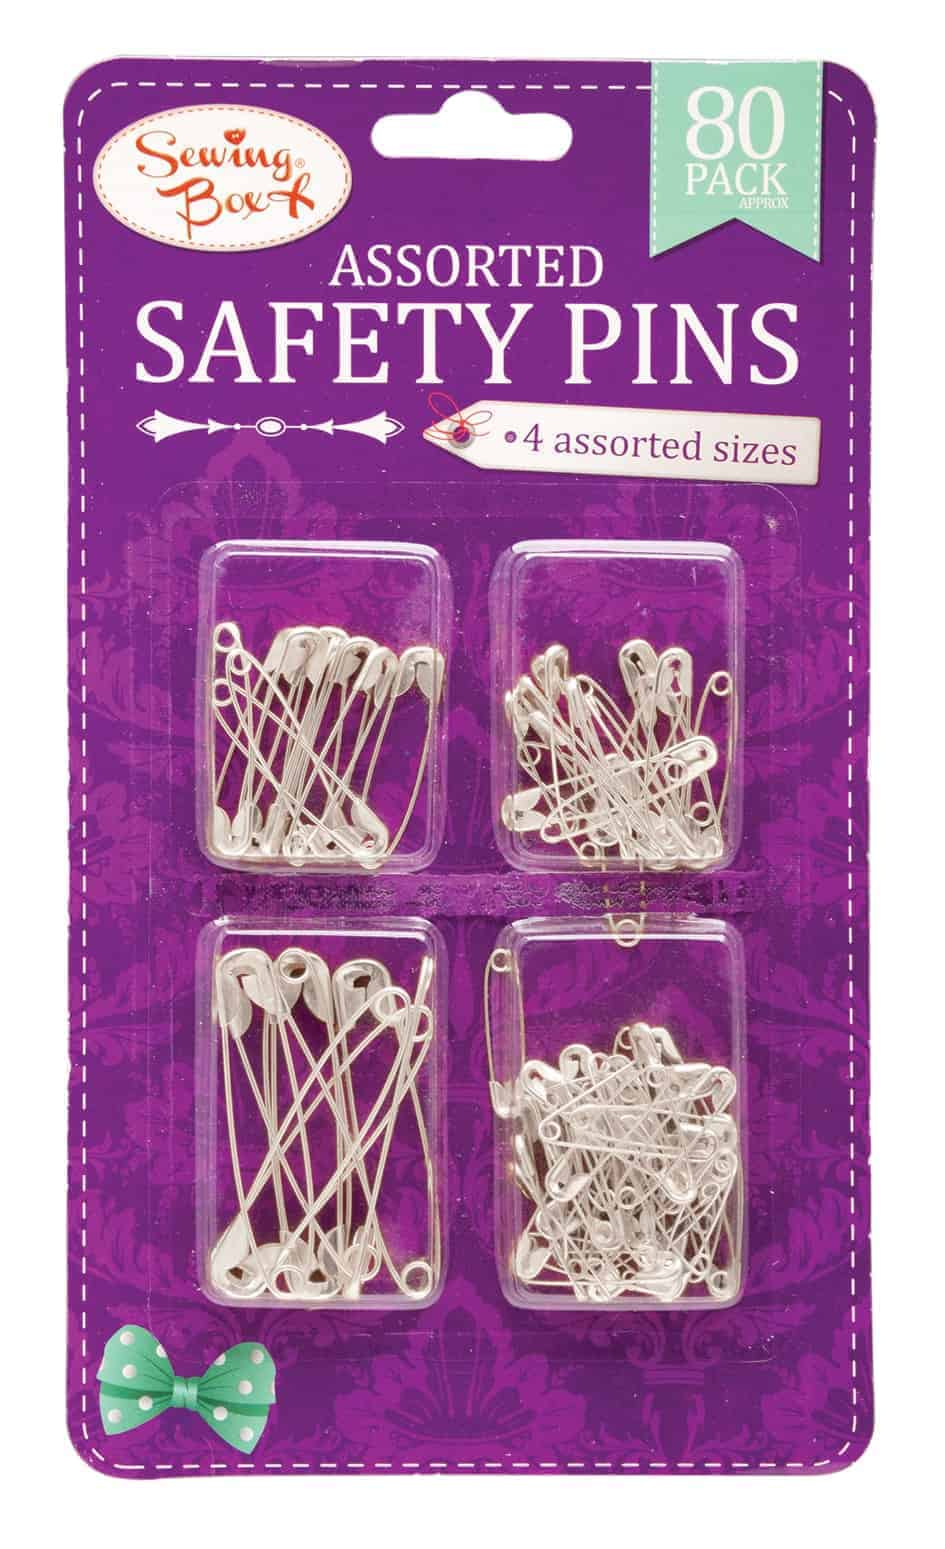 Sewing Box Silver Safety Pins